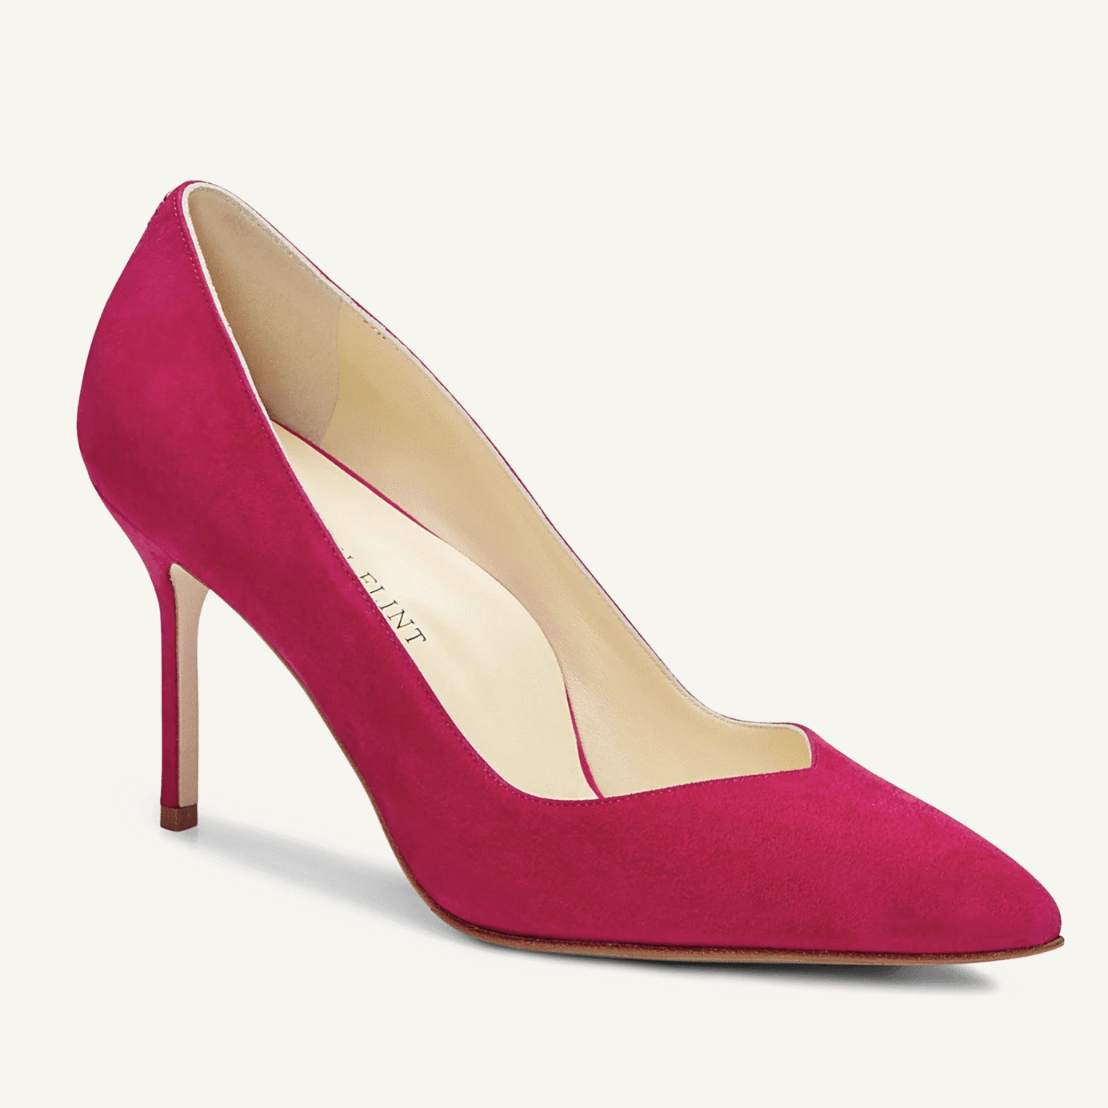 Sarah Flint Perfect Pump Pink